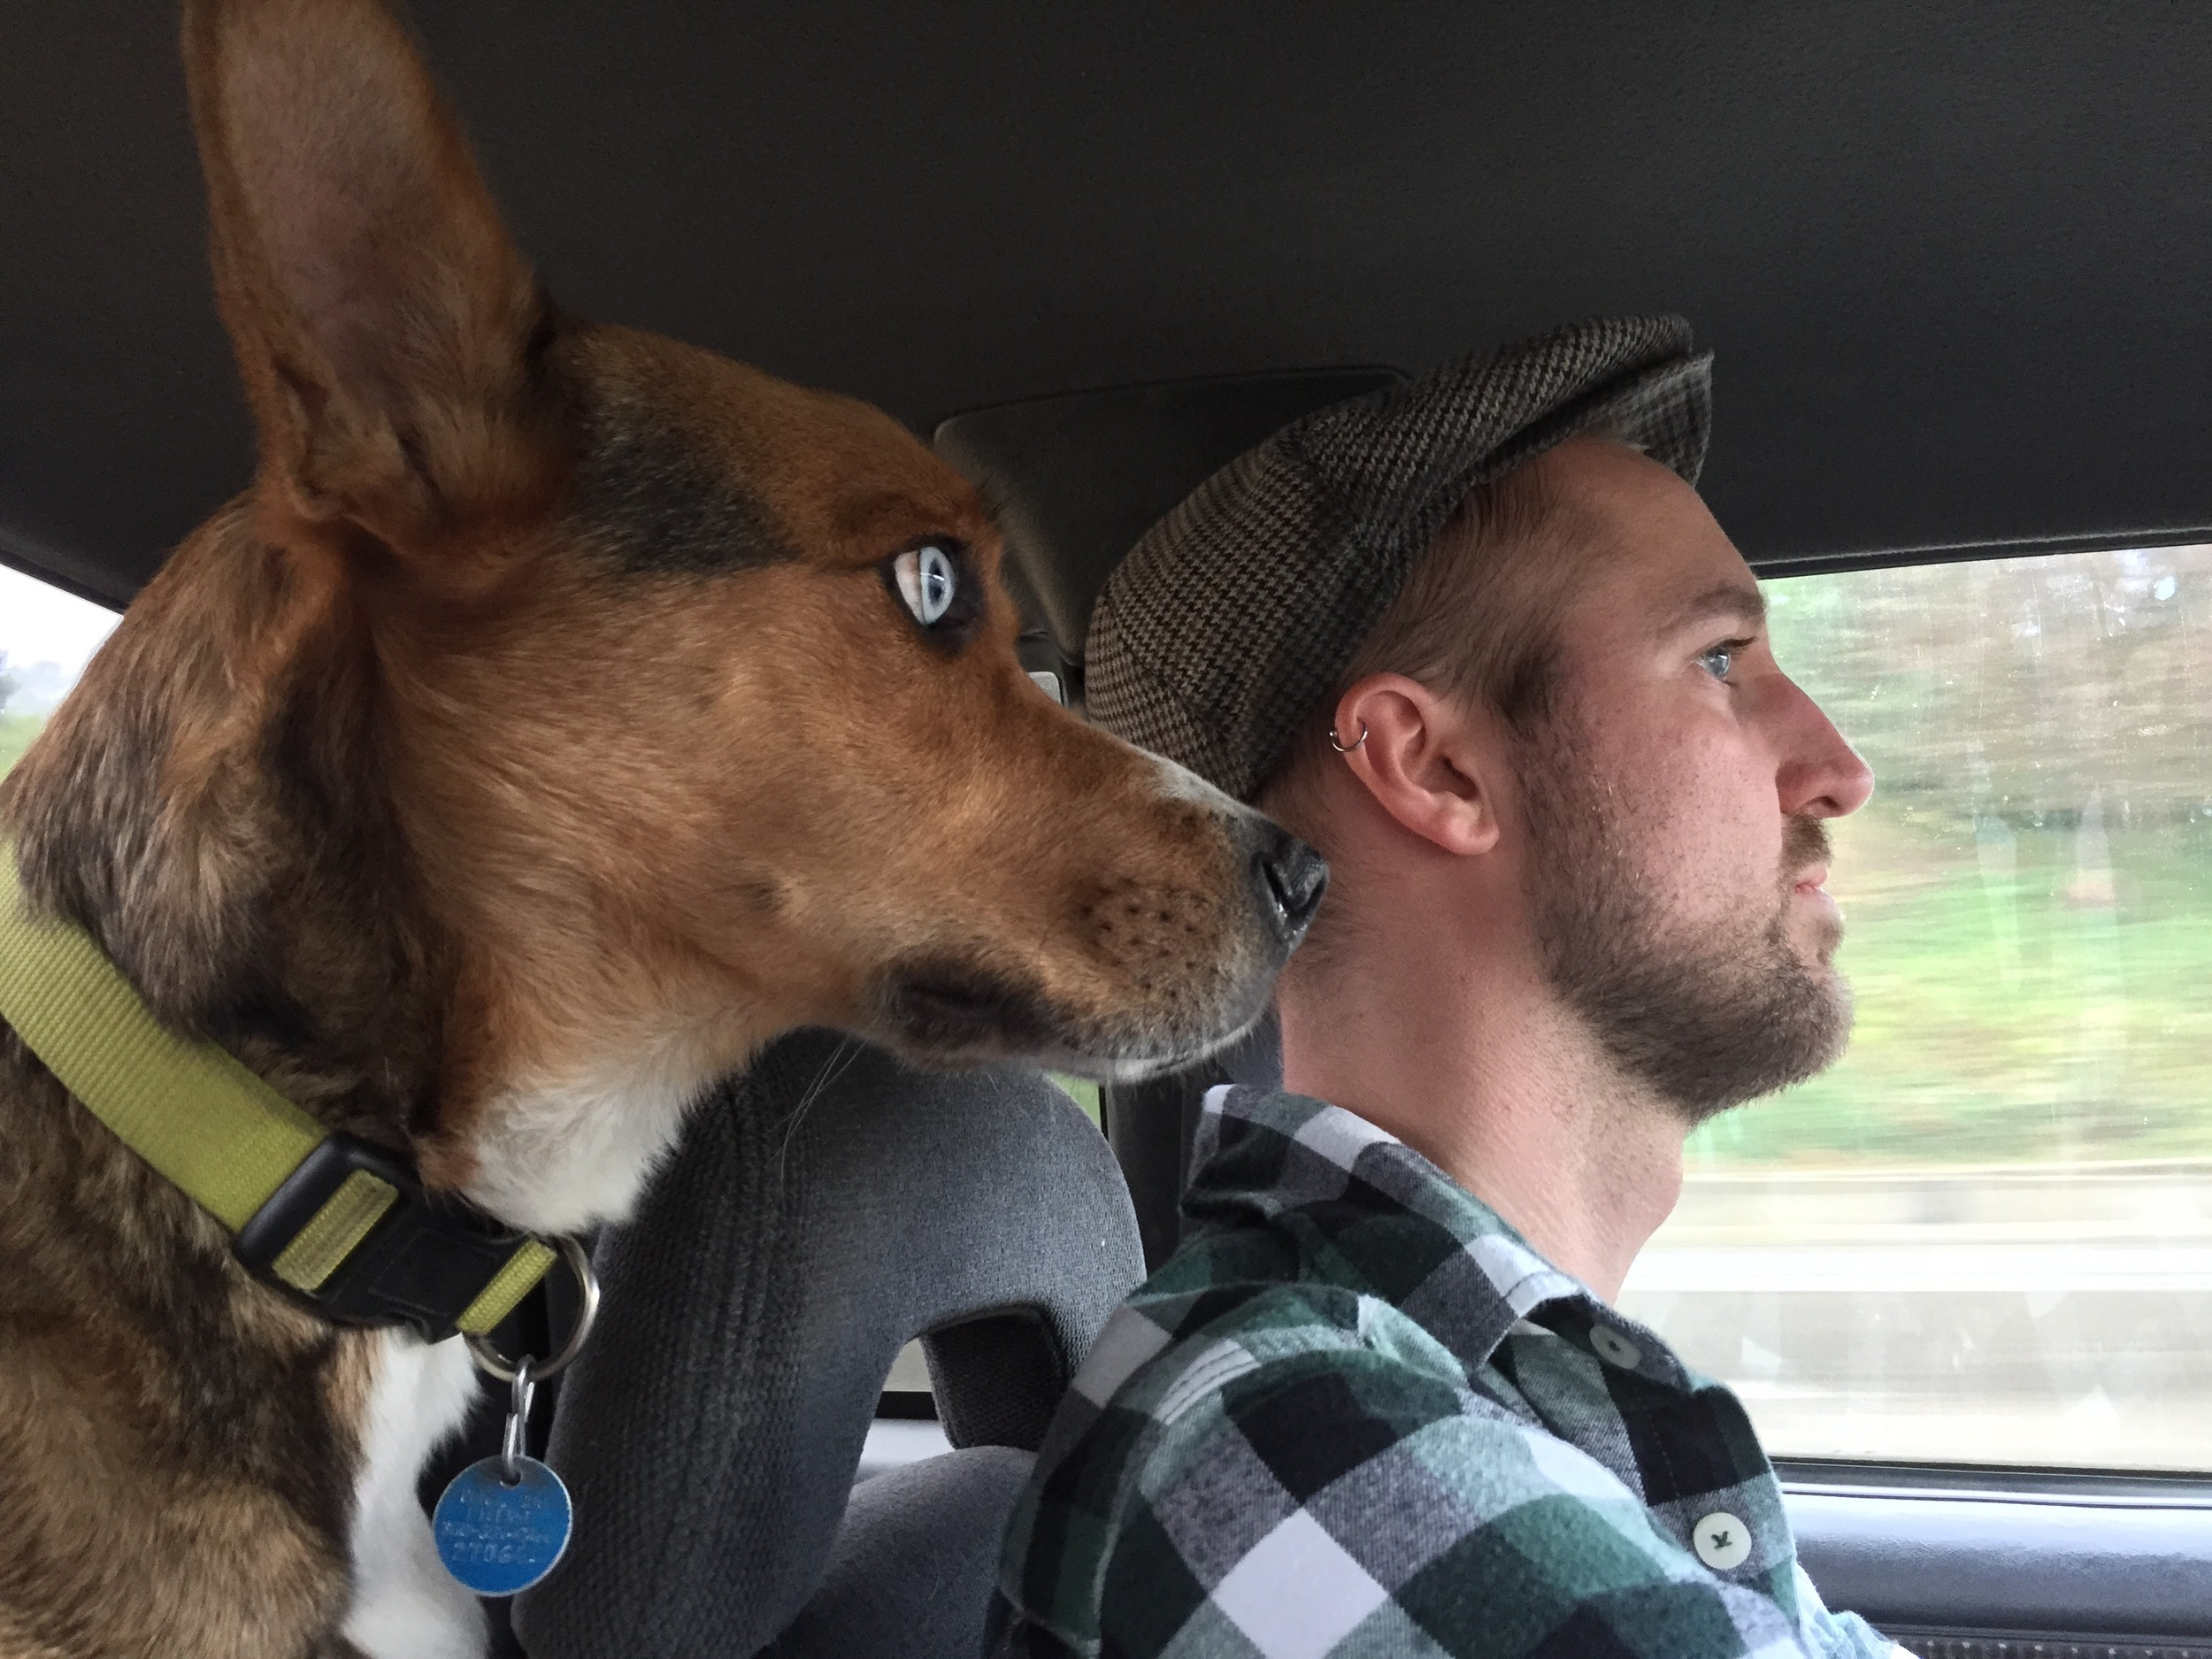 Eyes on the road.